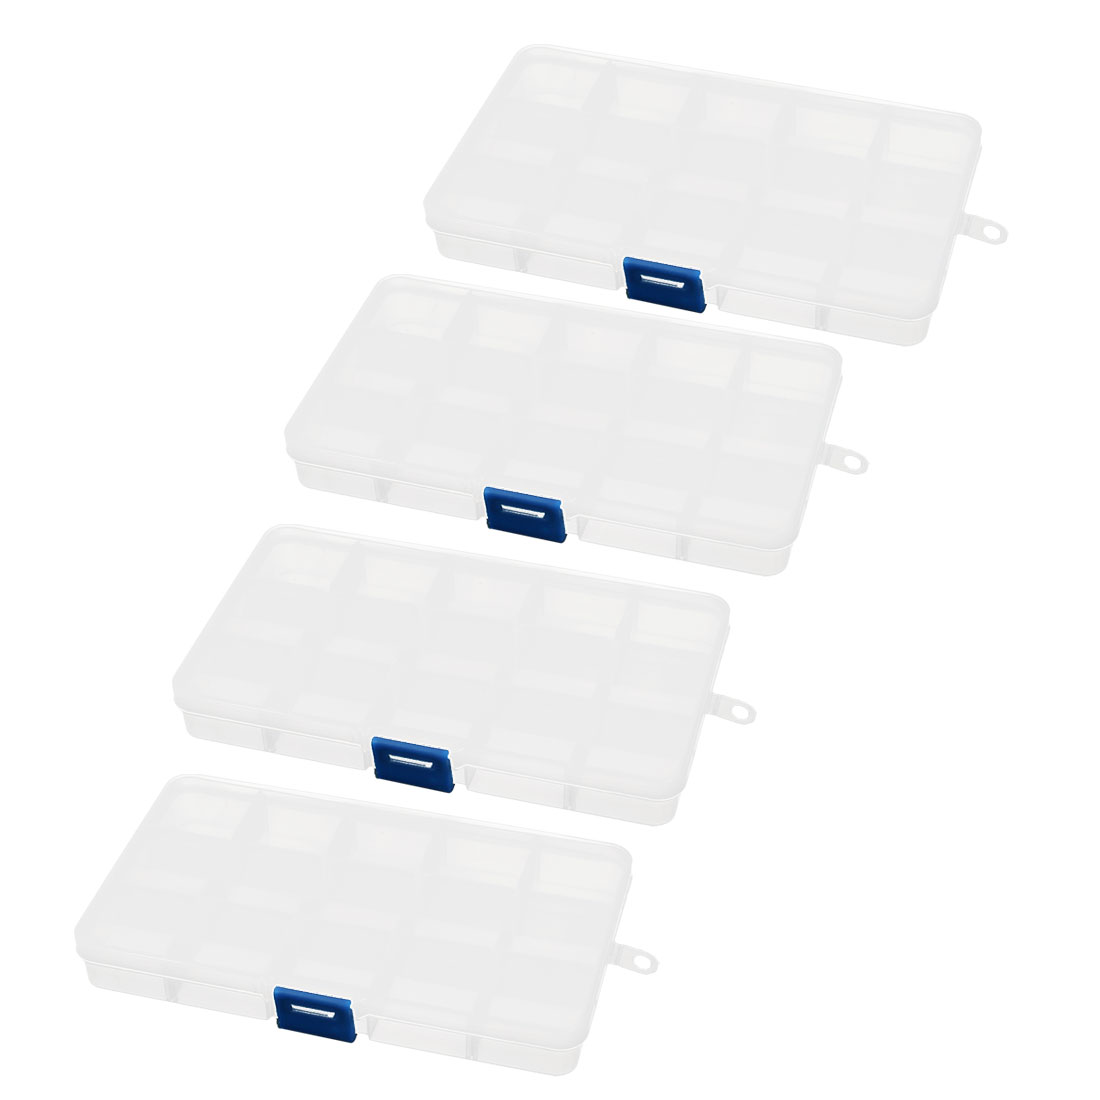 4pcs Clear White Plastic Rectangular Detachable 15 Slots Screws Storage Container Box Case